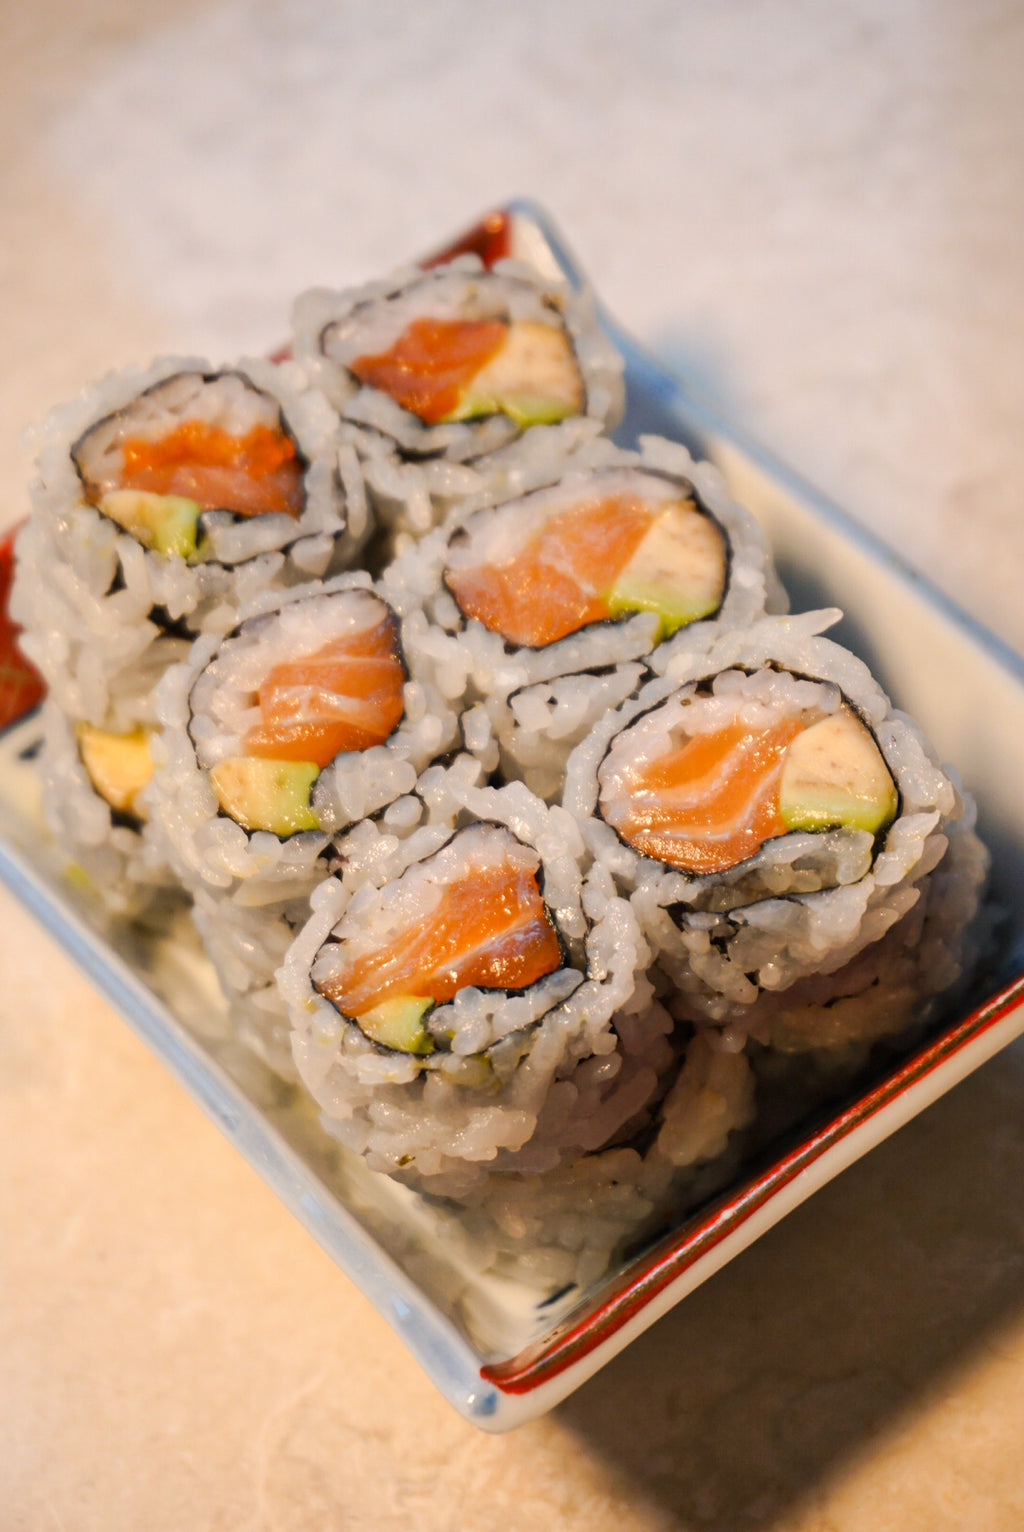 Salmon Avocado Roll - Park Slope